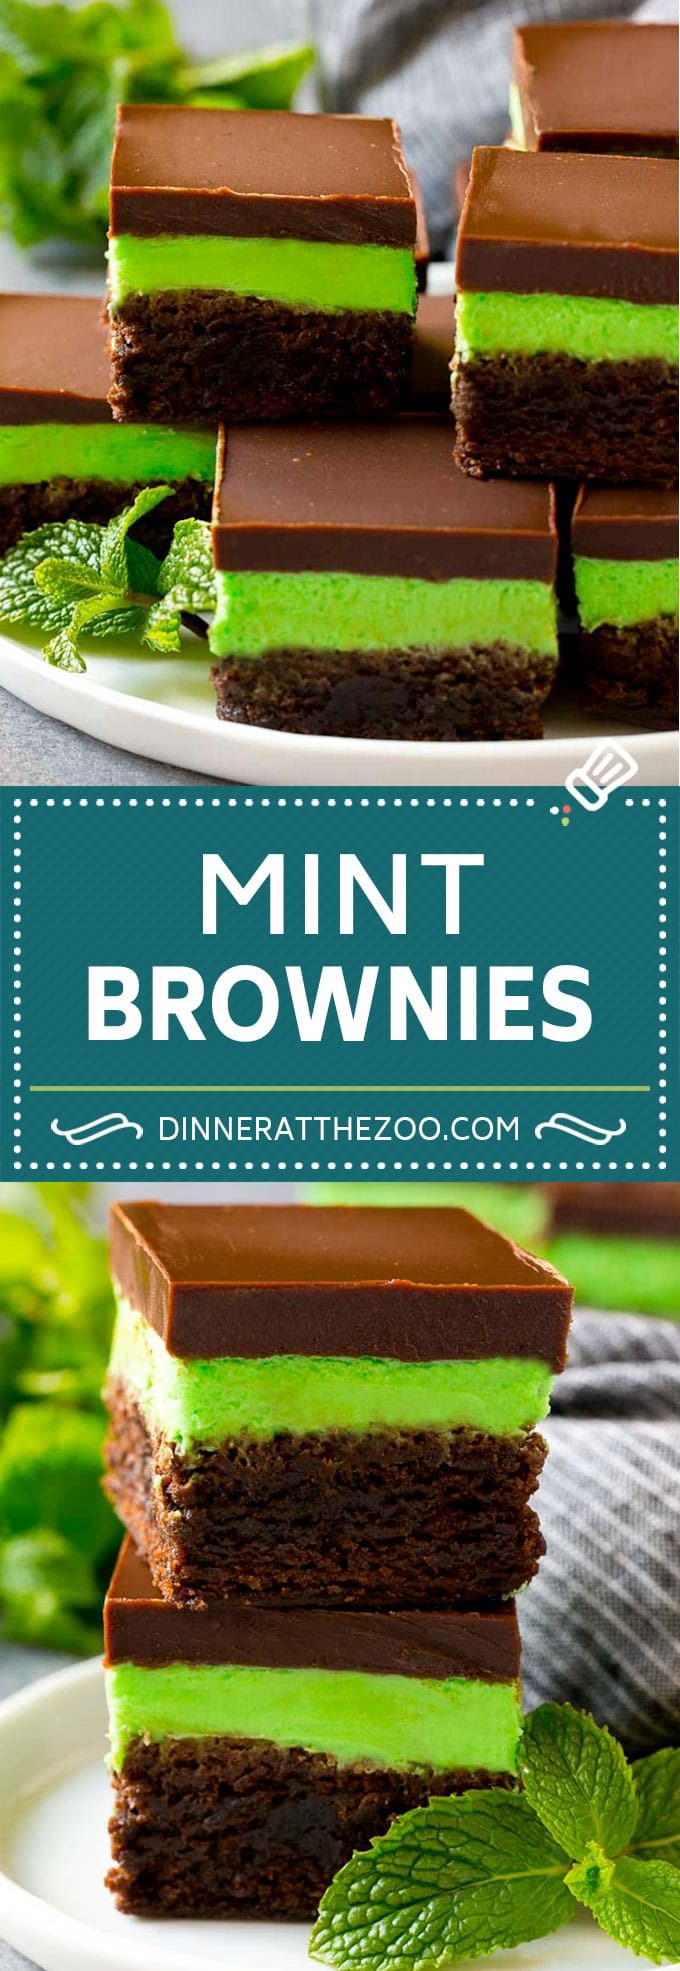 Mint Brownies Recipe   Layered Brownies   Frosted Brownies #brownies #chocolate #frosting #mint #dessert #dinneratthezoo